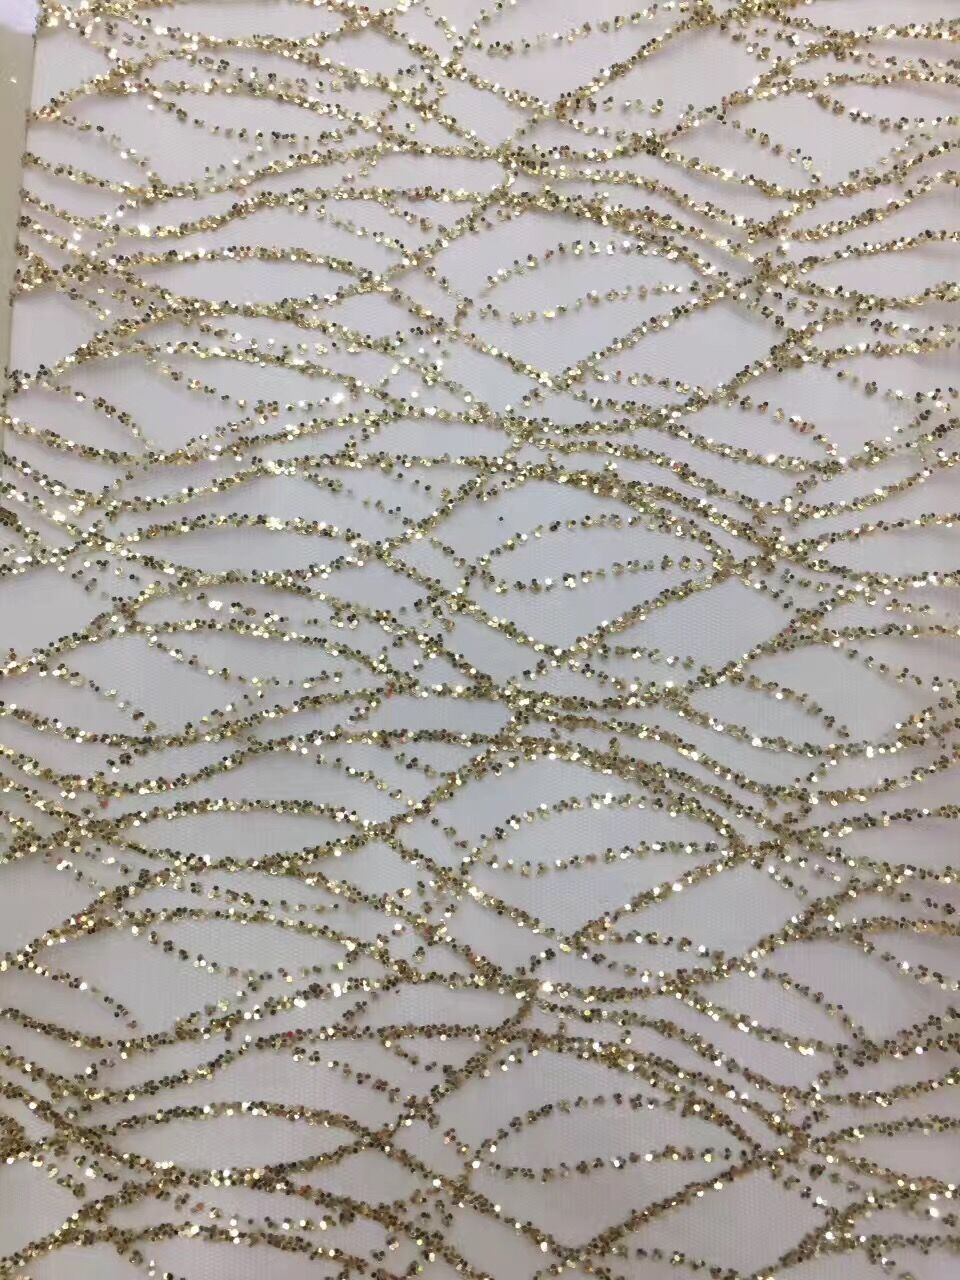 jianxi 32715 on sale glitter lace fabric best quality glitter Sequins lace african lace fabric for